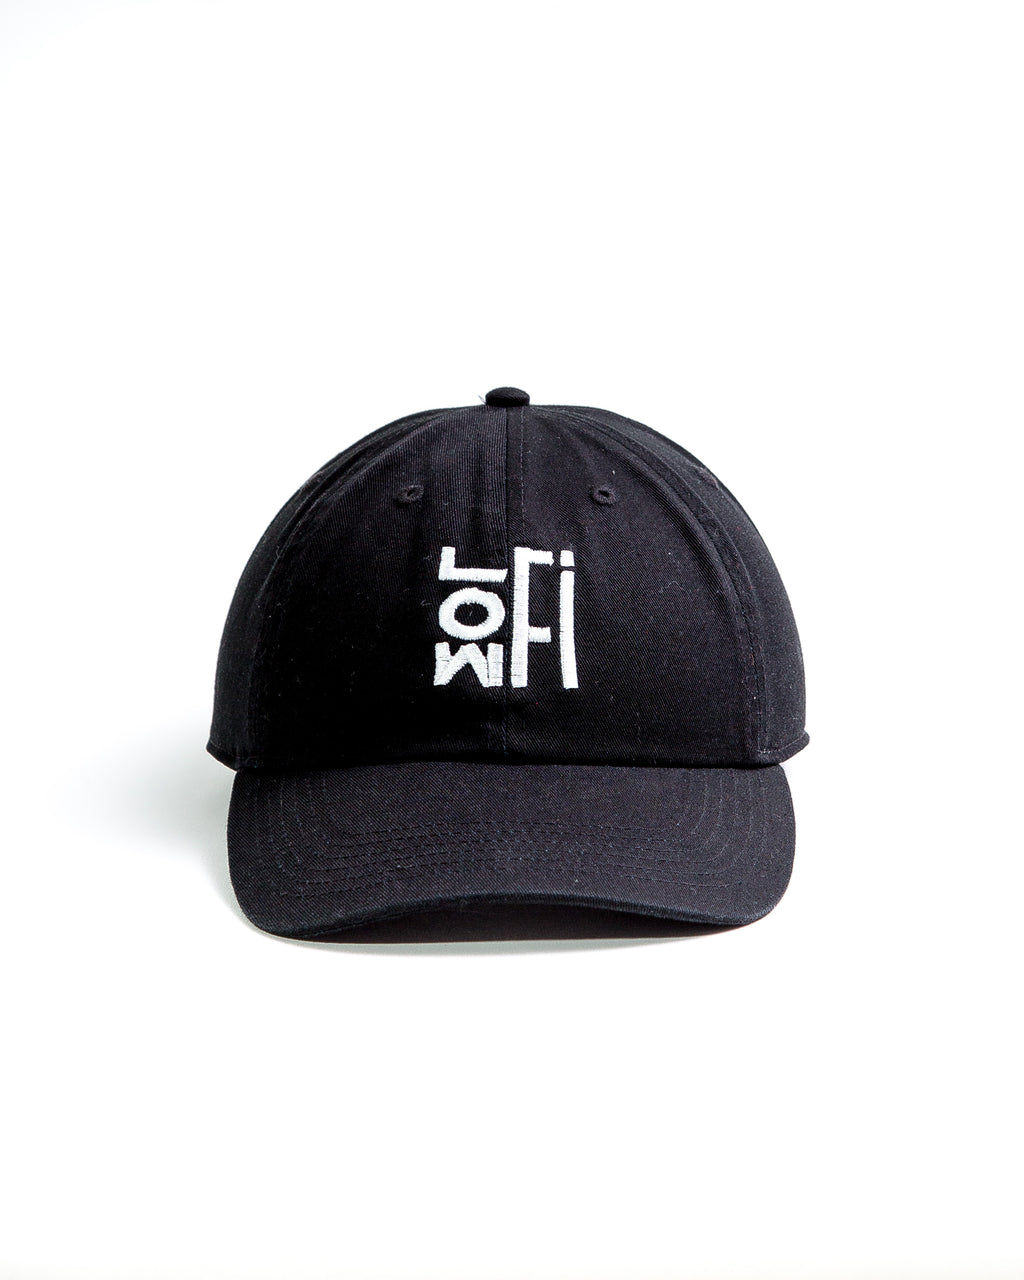 LOWFi Dad Hat (Black)